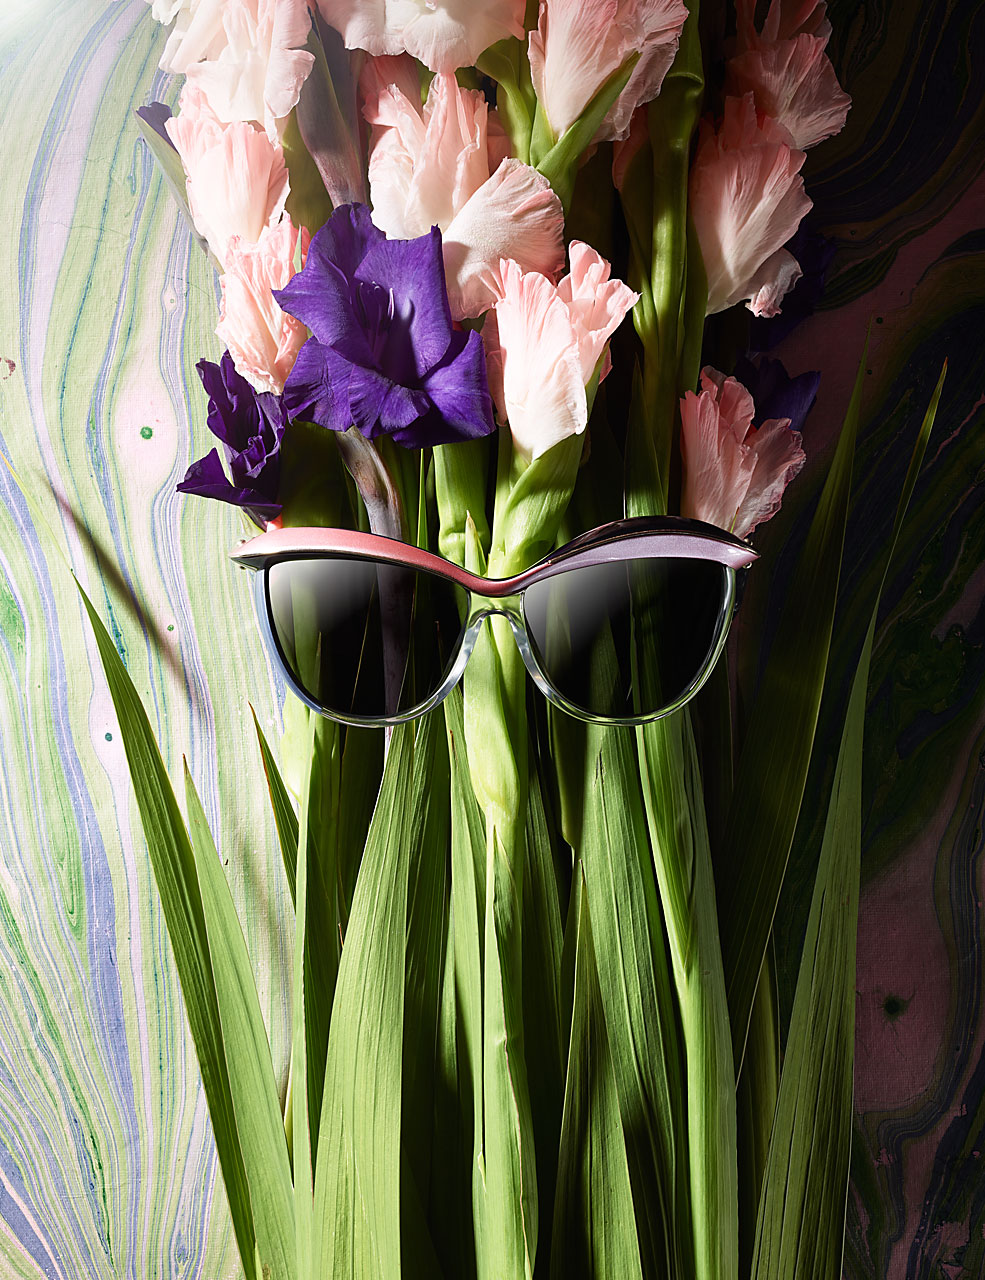 Sabine-Scheer-photography-dior-sunglasses